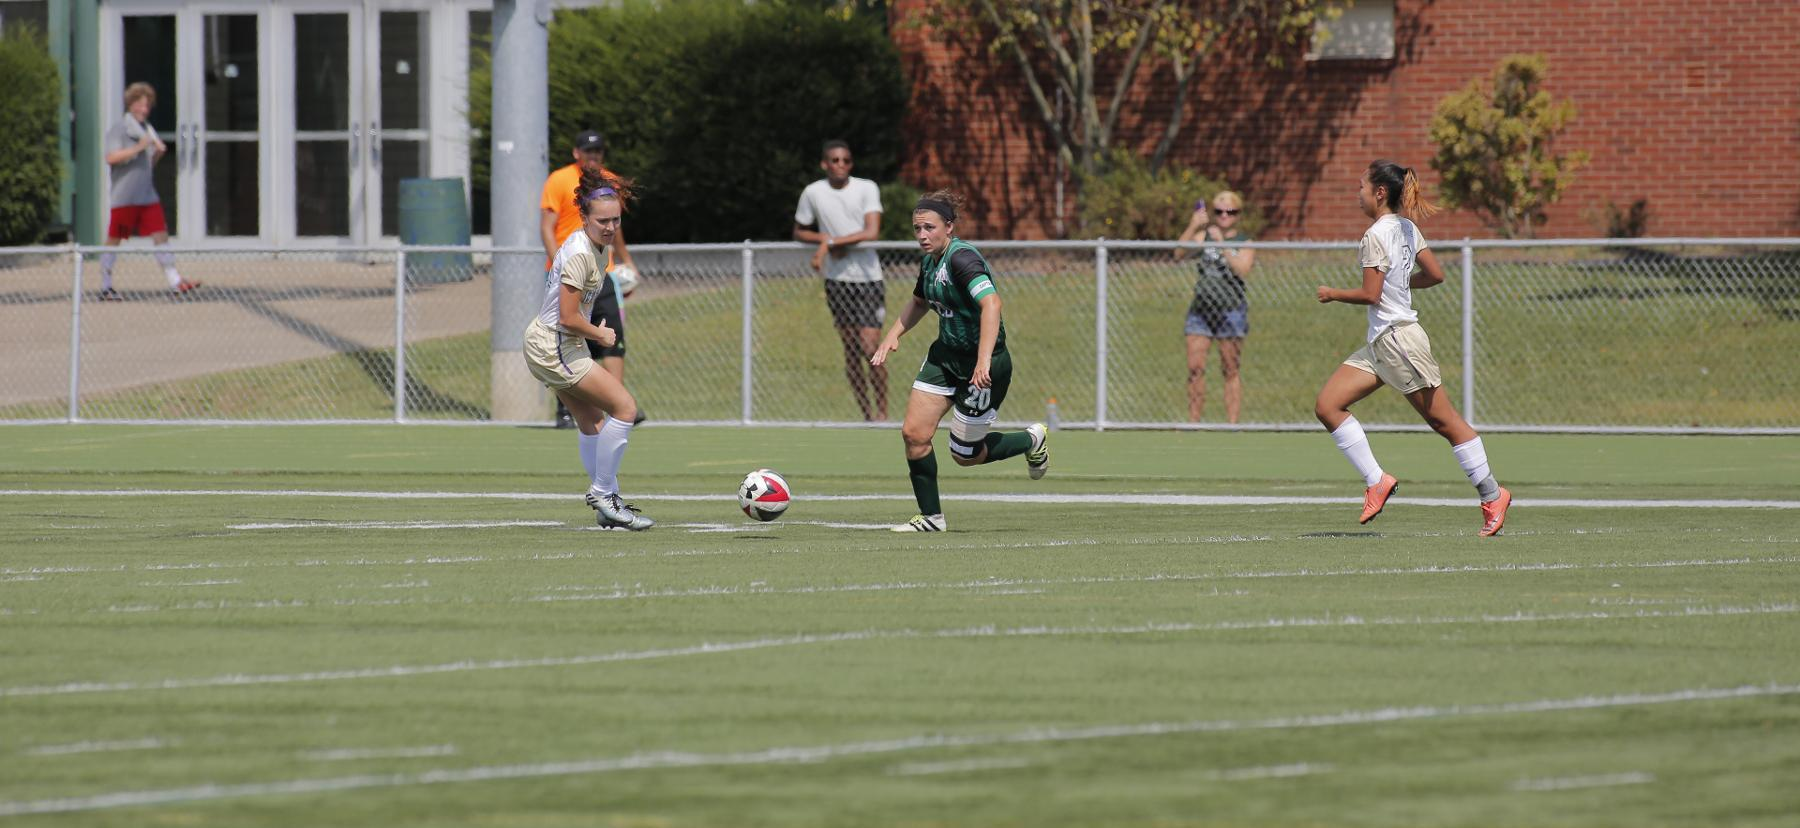 Bison battle in 1-0 loss to Westminster